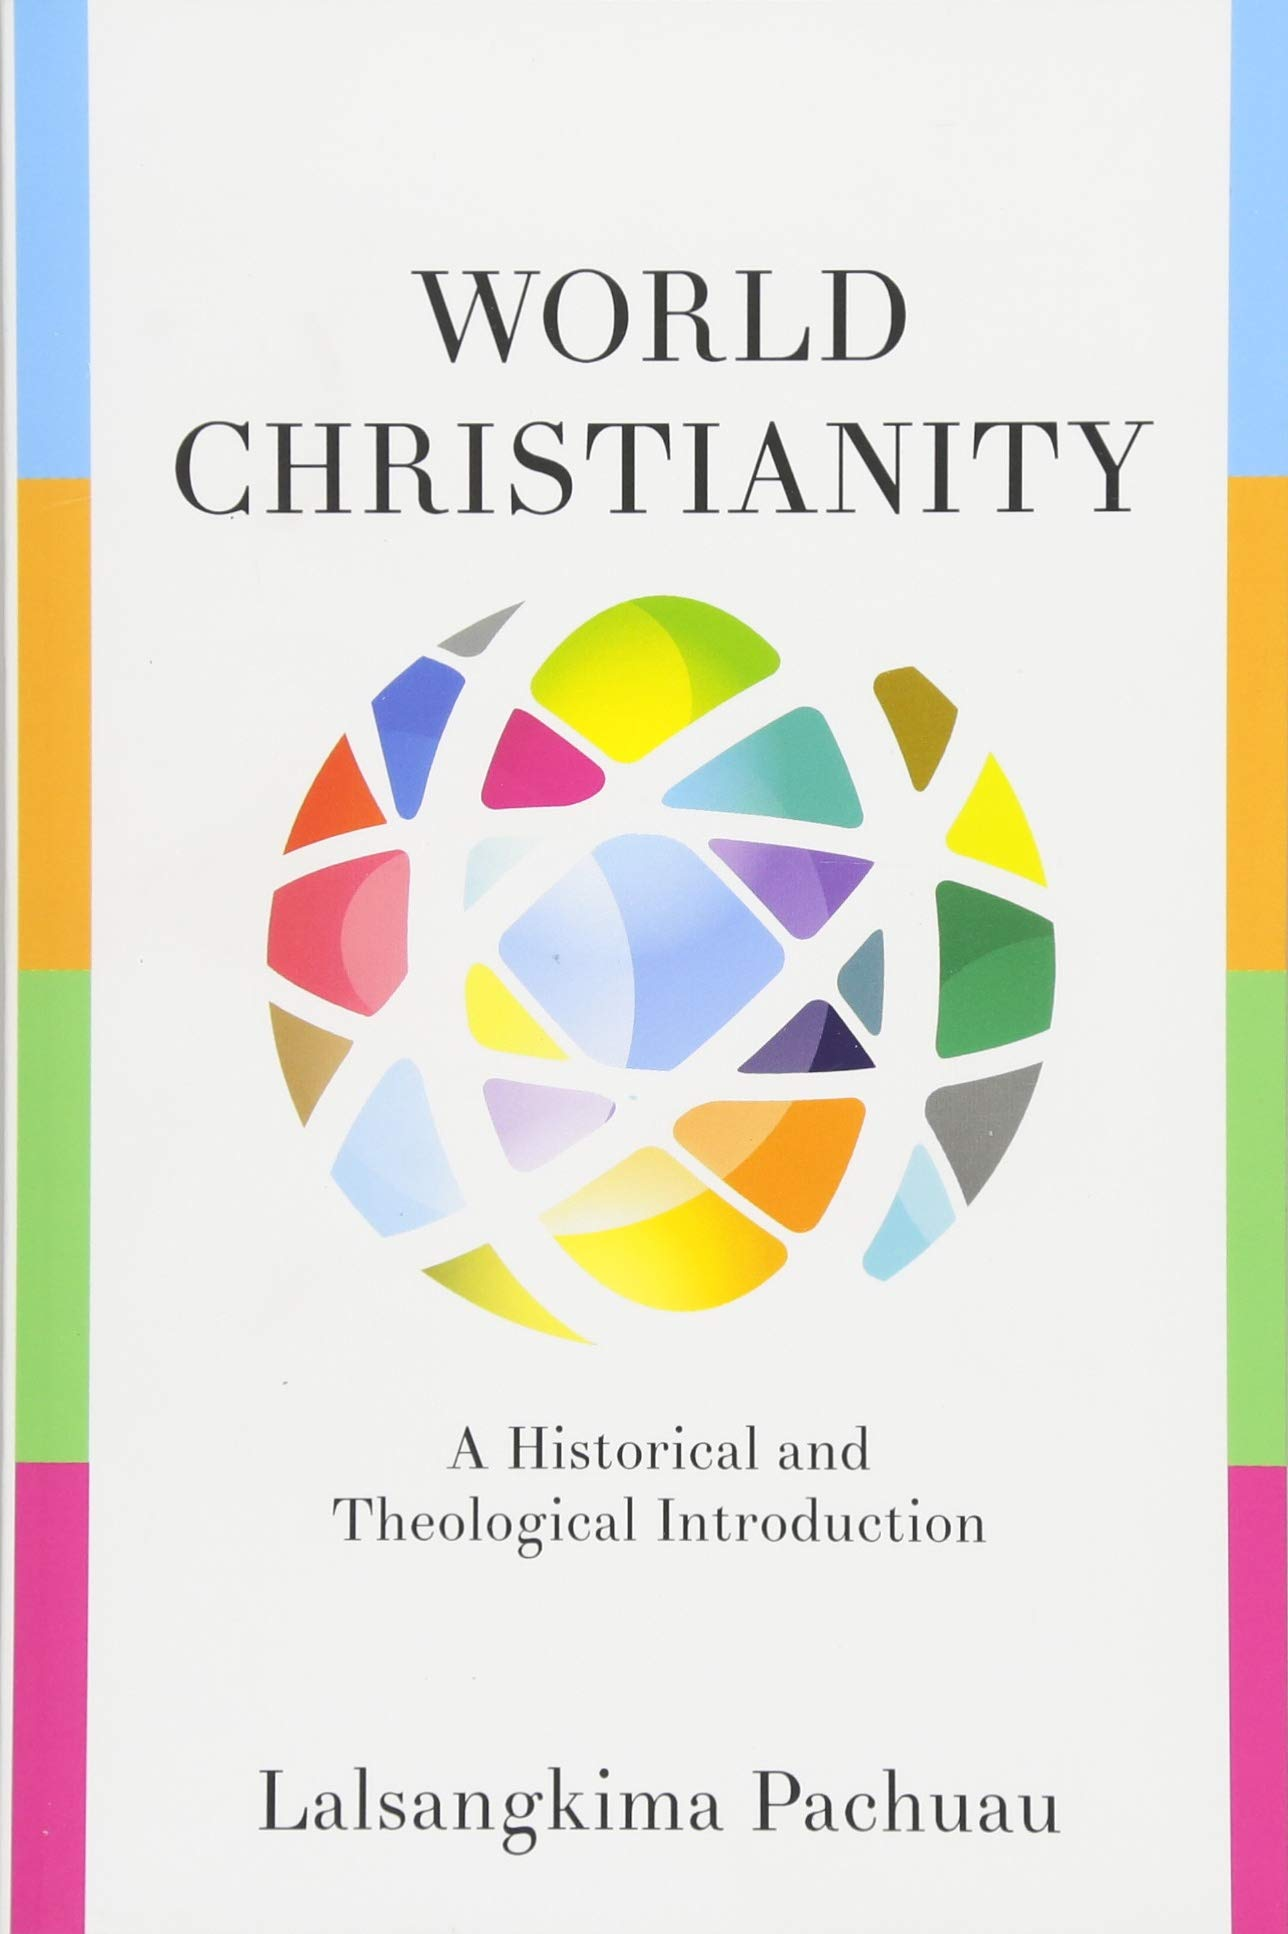 World Christianity: A Historical and Theological Introduction: Lalsangkima  Pachuau: 9781426753183: Amazon.com: Books